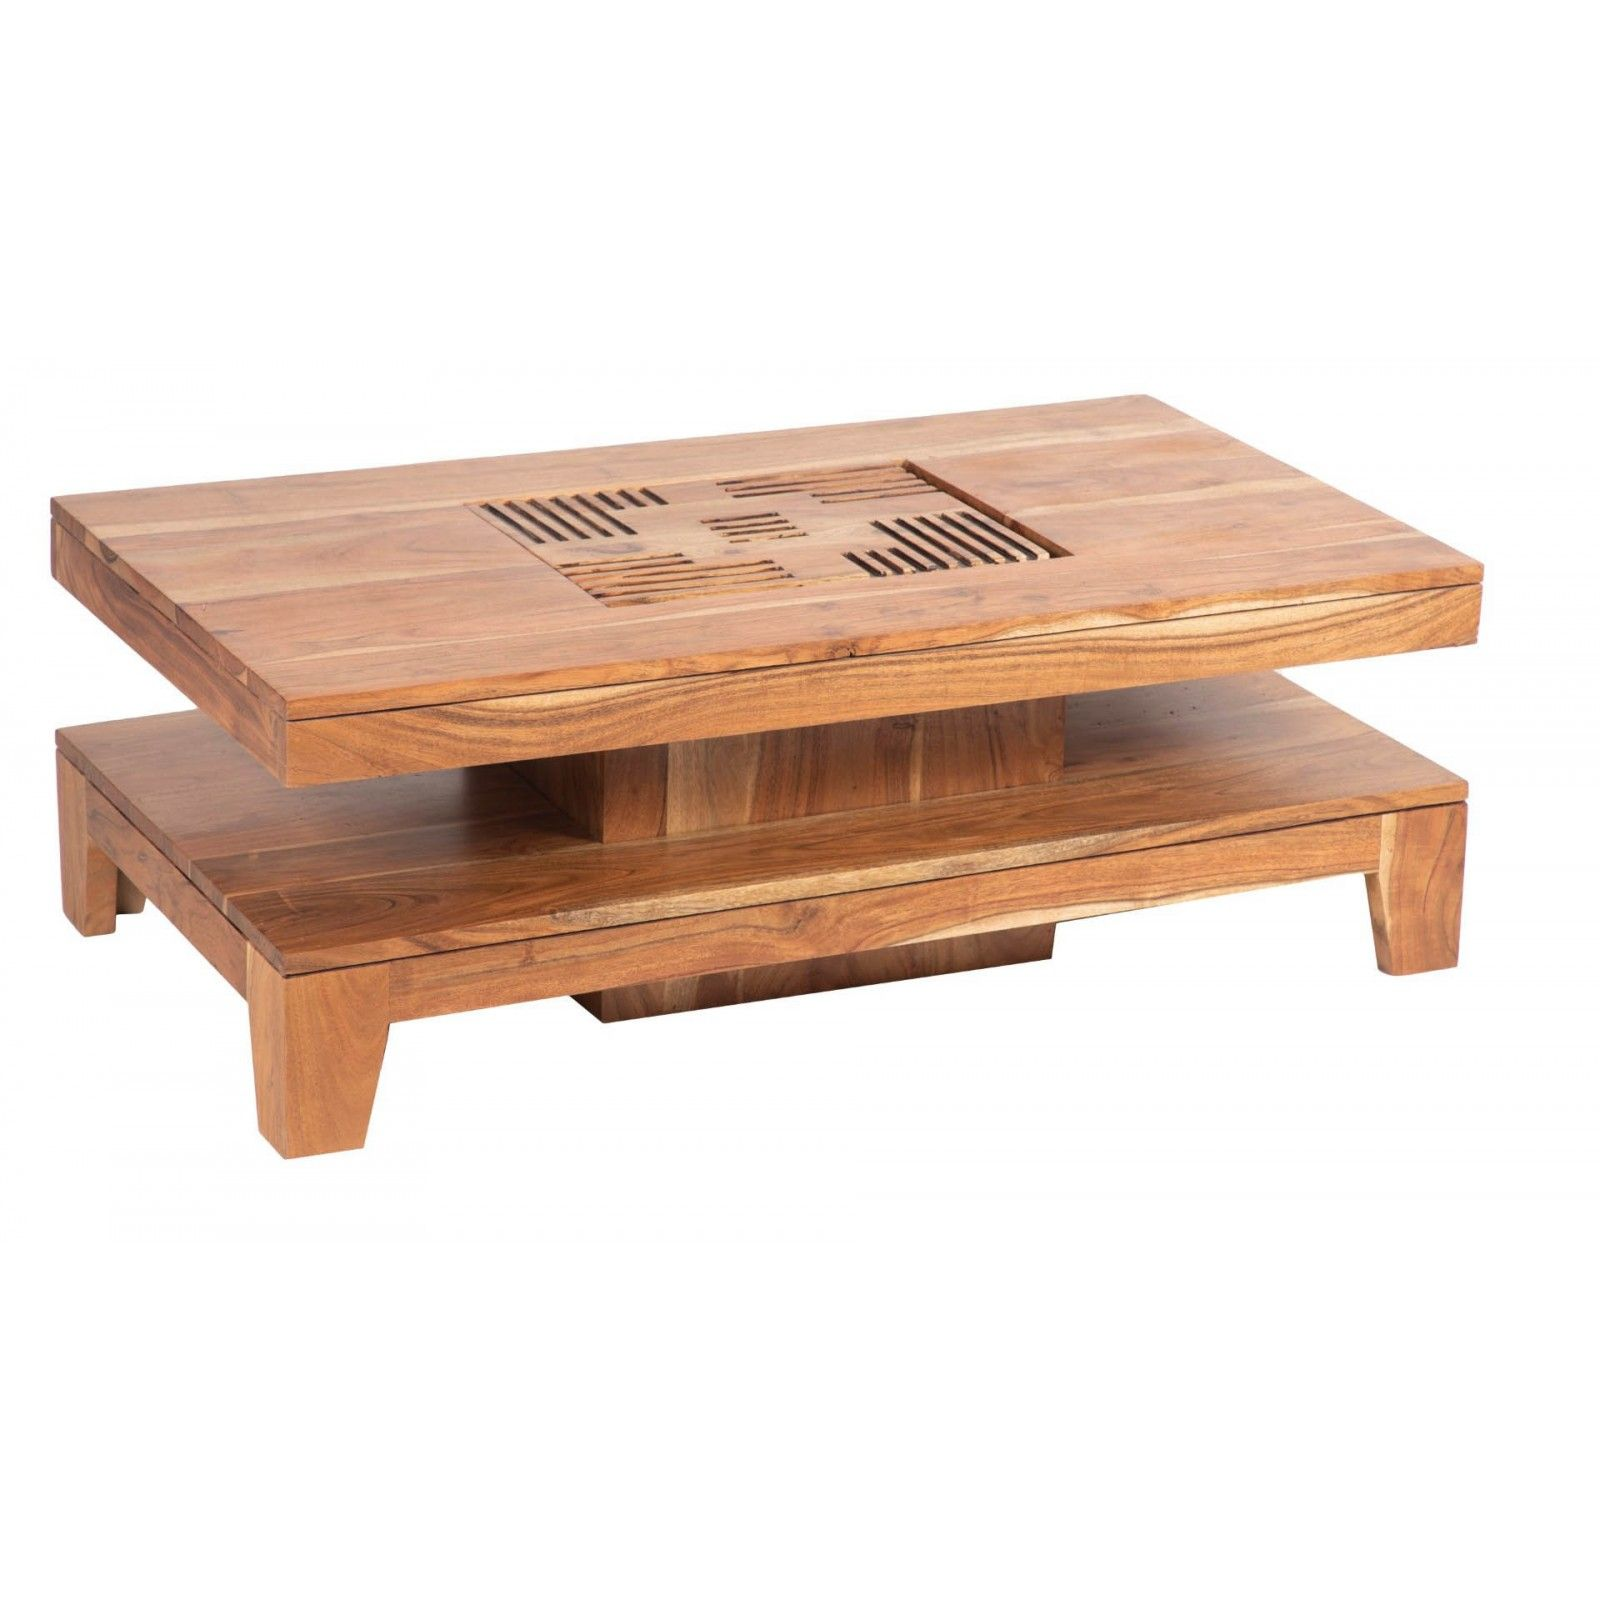 KAVISH II TABLE BASSE RECT PM Tables basses rectangulaires - 6